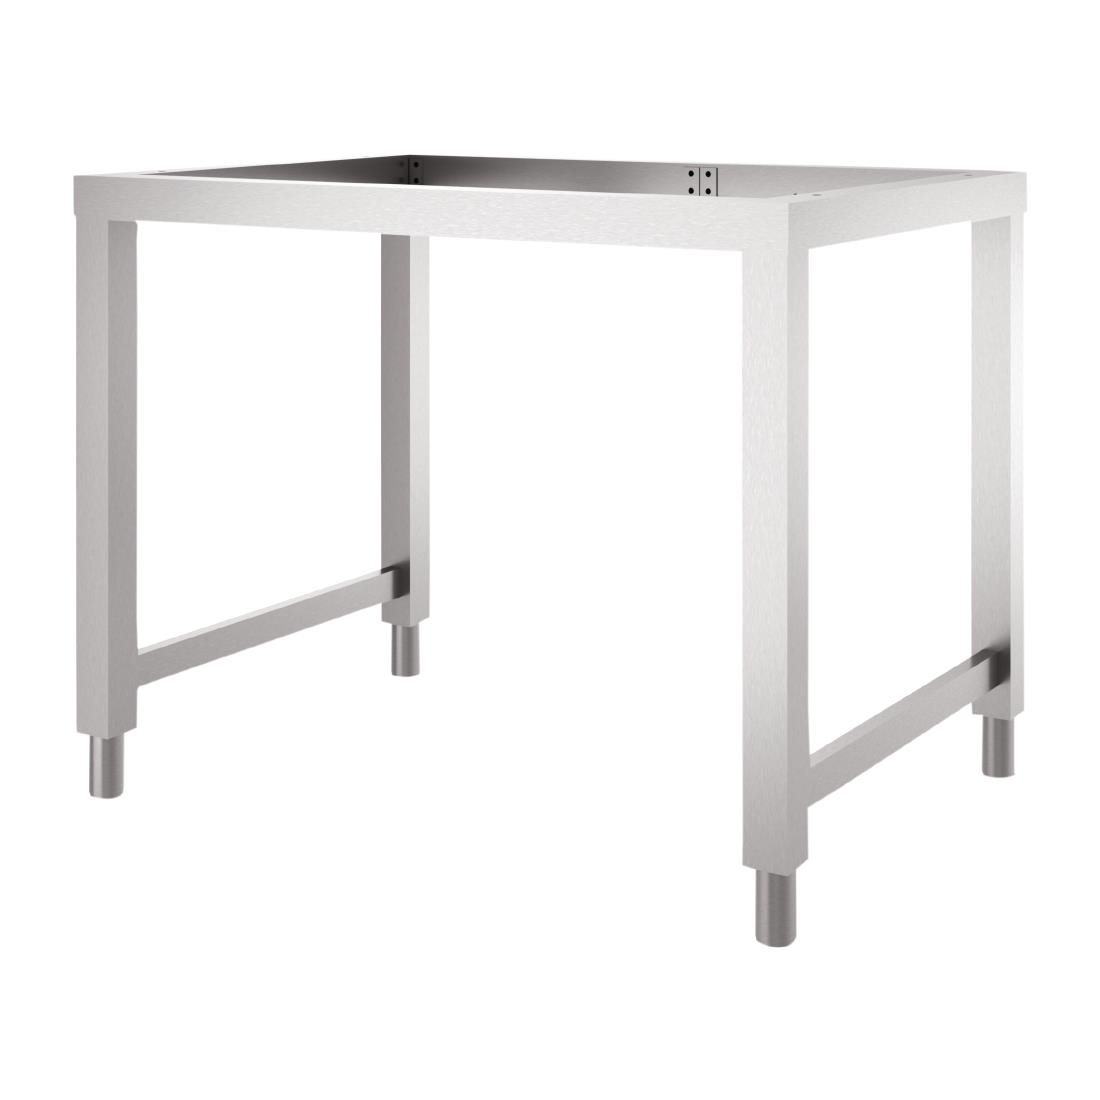 Image of Lainox Open Stainless Steel Stand NSR102